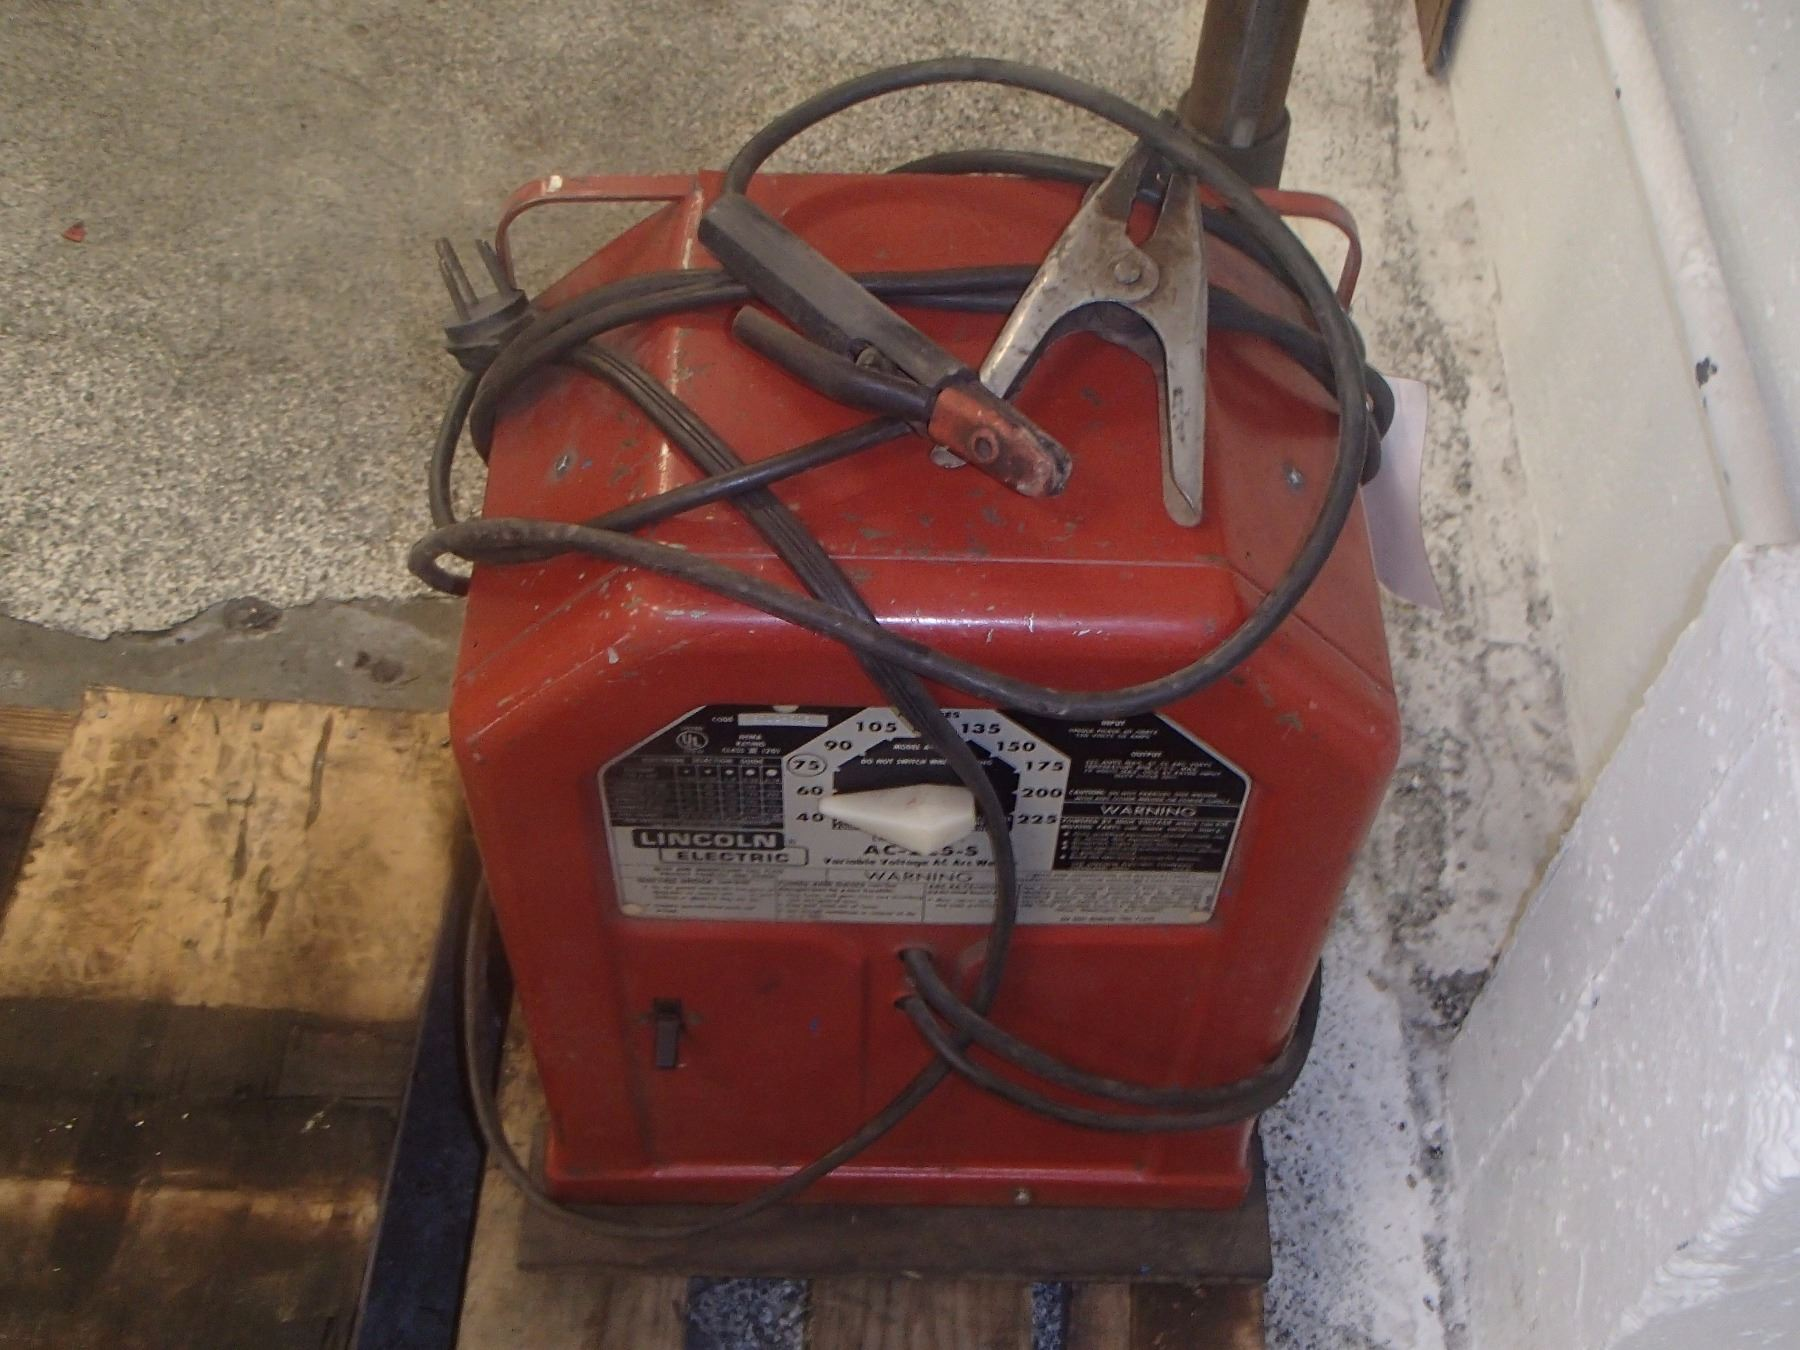 medium resolution of  image 2 lincoln electric ac 225 s variable voltage ac arc welder